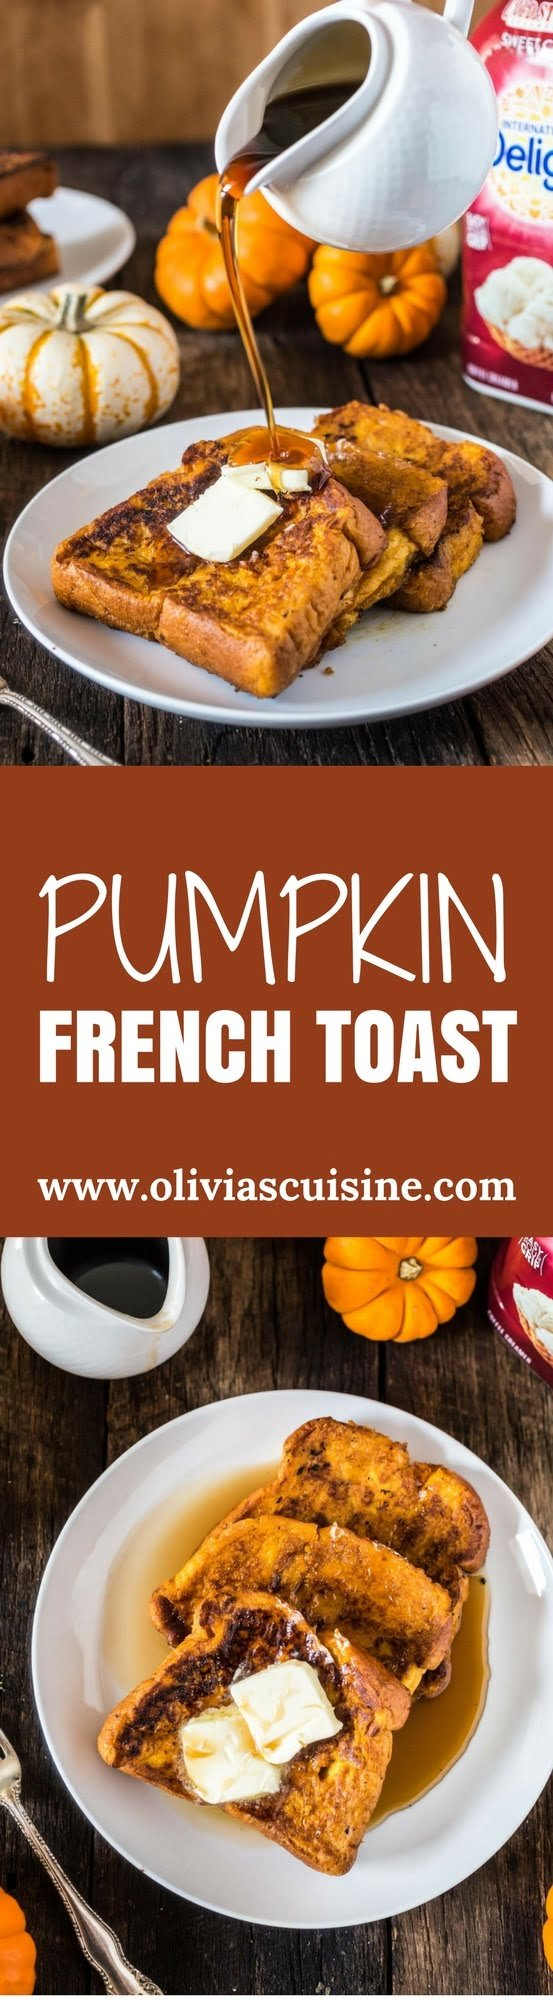 Pumpkin French Toast   www.oliviascuisine.com   This Pumpkin French Toast is the perfect Fall breakfast! Easy, delicious and coated in everybody's favorite autumnal ingredient: pumpkin, of course.